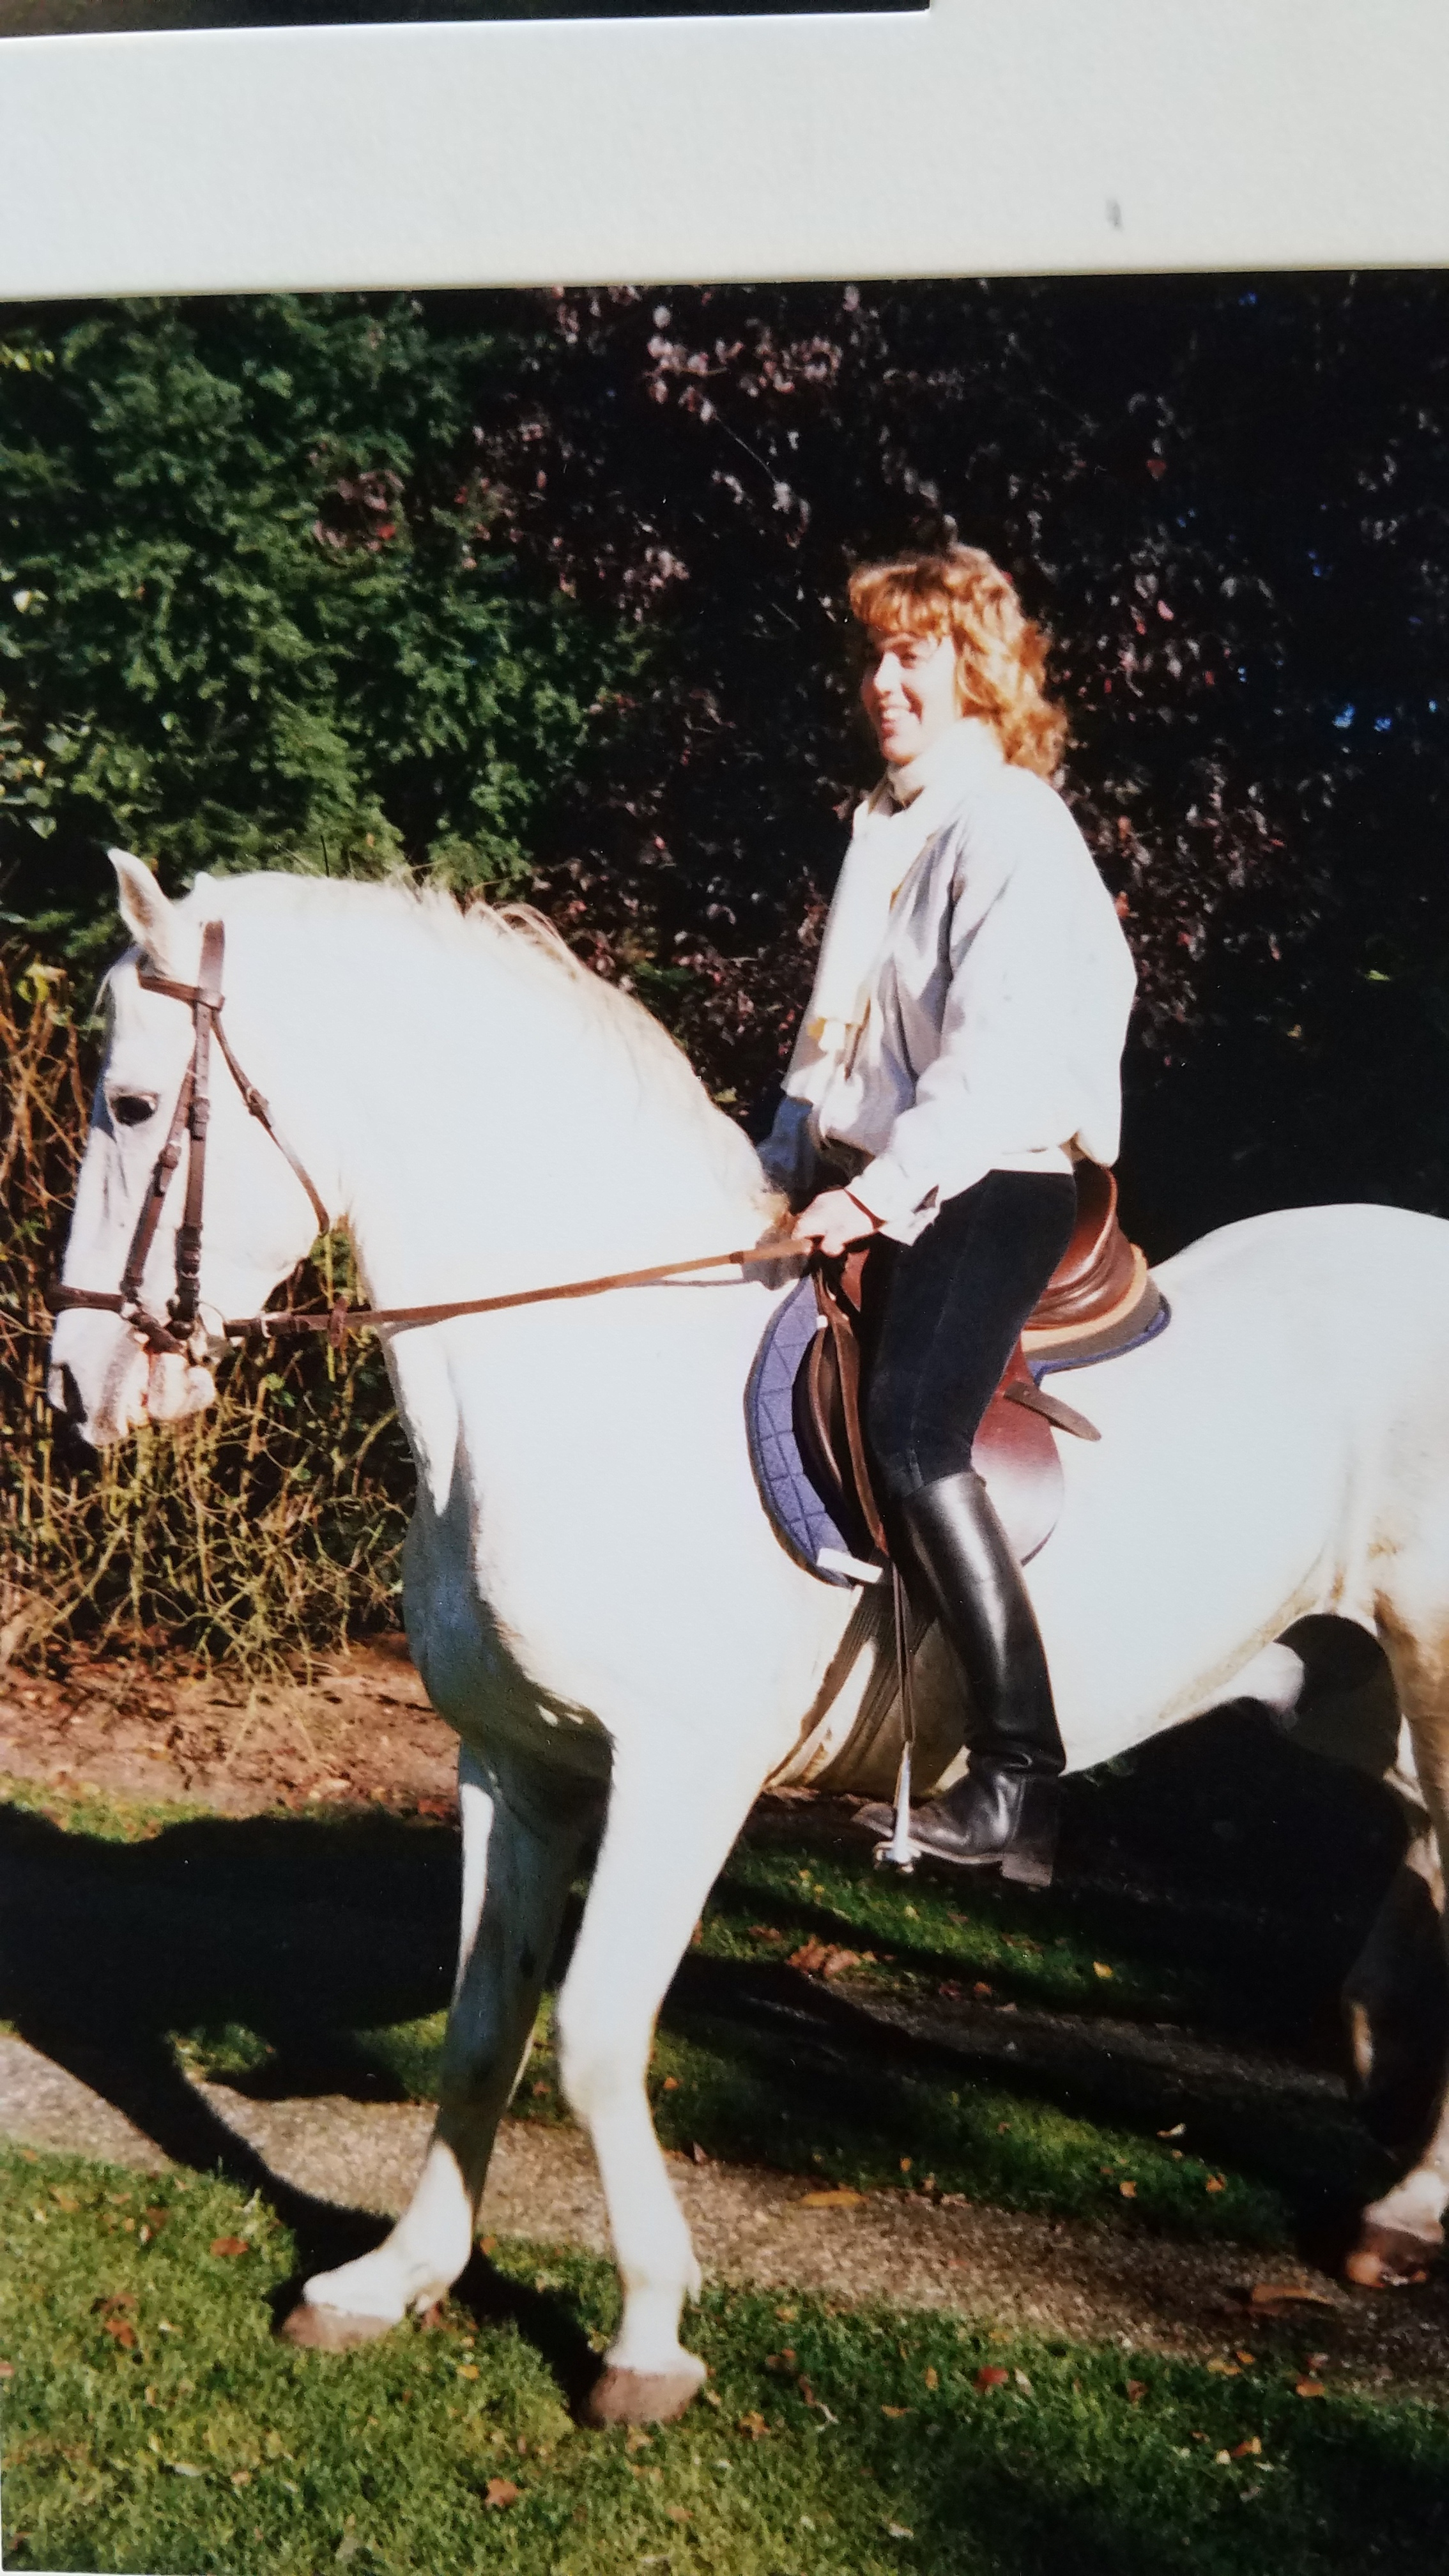 Lipizzaner breeding stallion Tullipan. I later trained and competed his son as well.